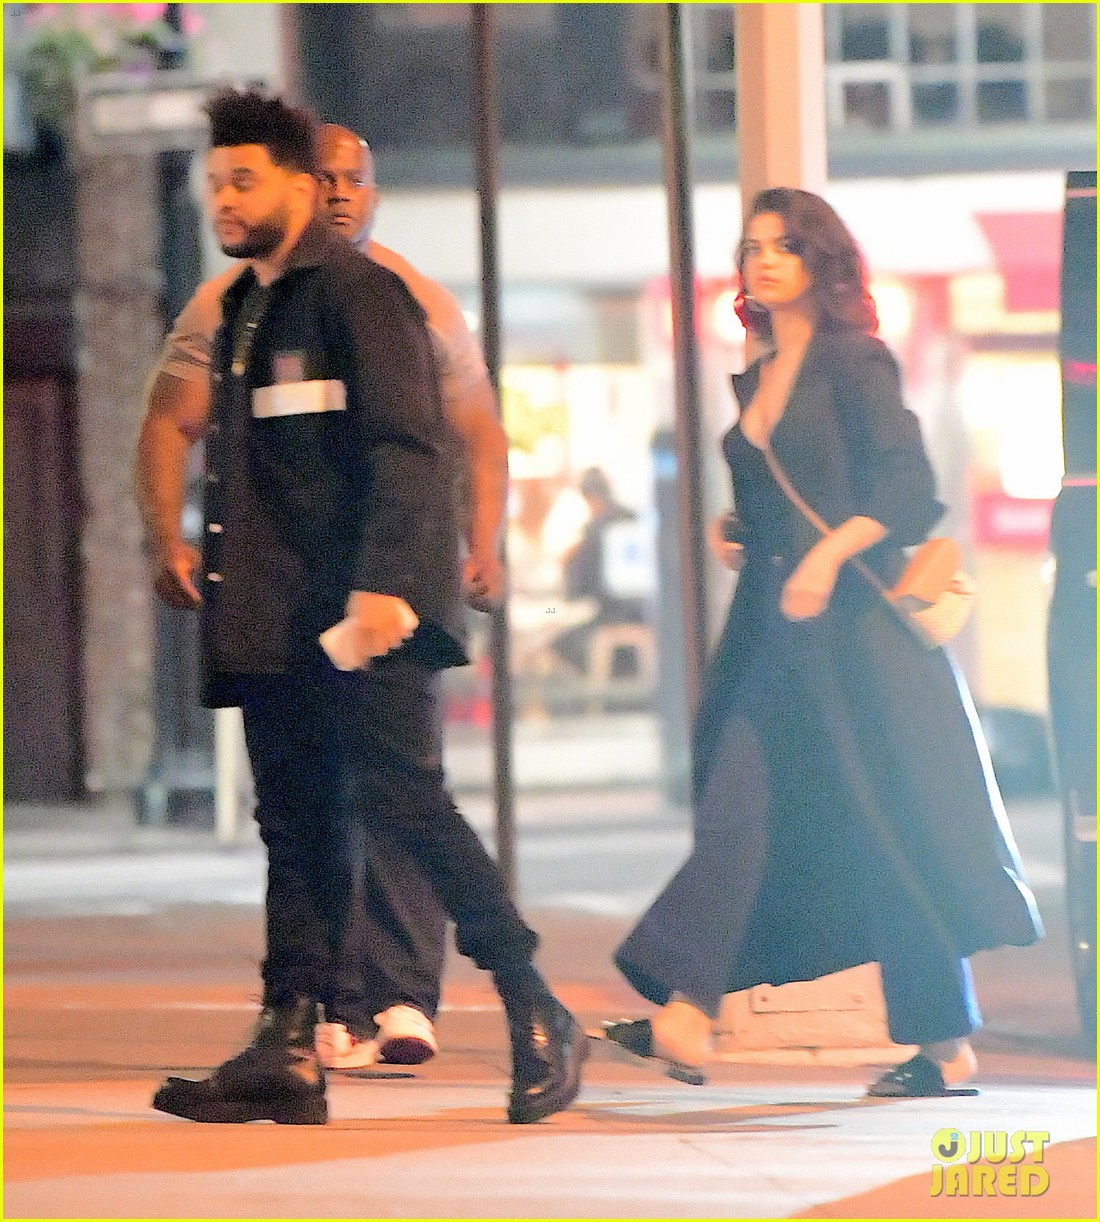 selena gomez the weeknd spend time together in new york city 01